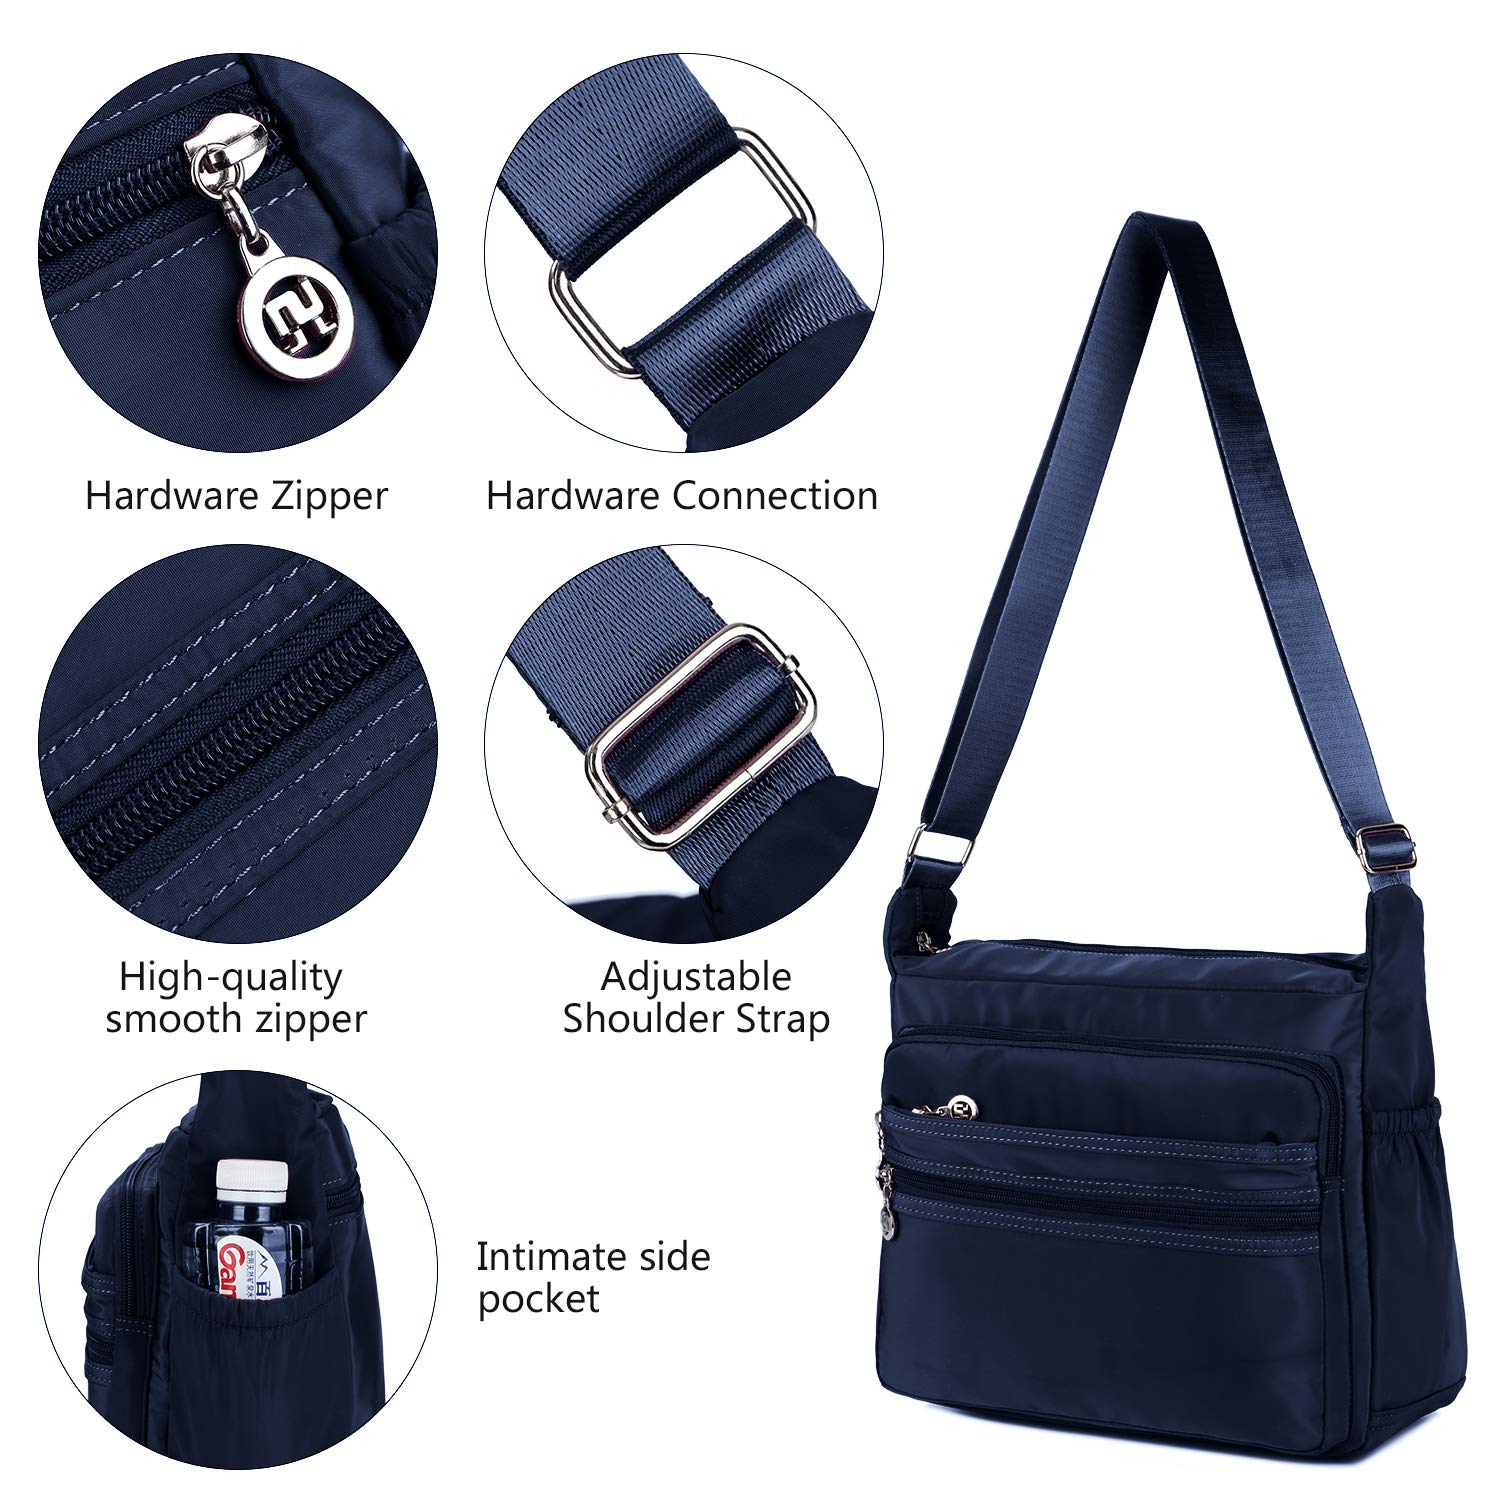 Crossbody Bag for Women Waterproof Shoulder Bag Messenger Bag Casual Canvas Purse Handbag (Small, Navy Blue) by NOTAG (Image #4)